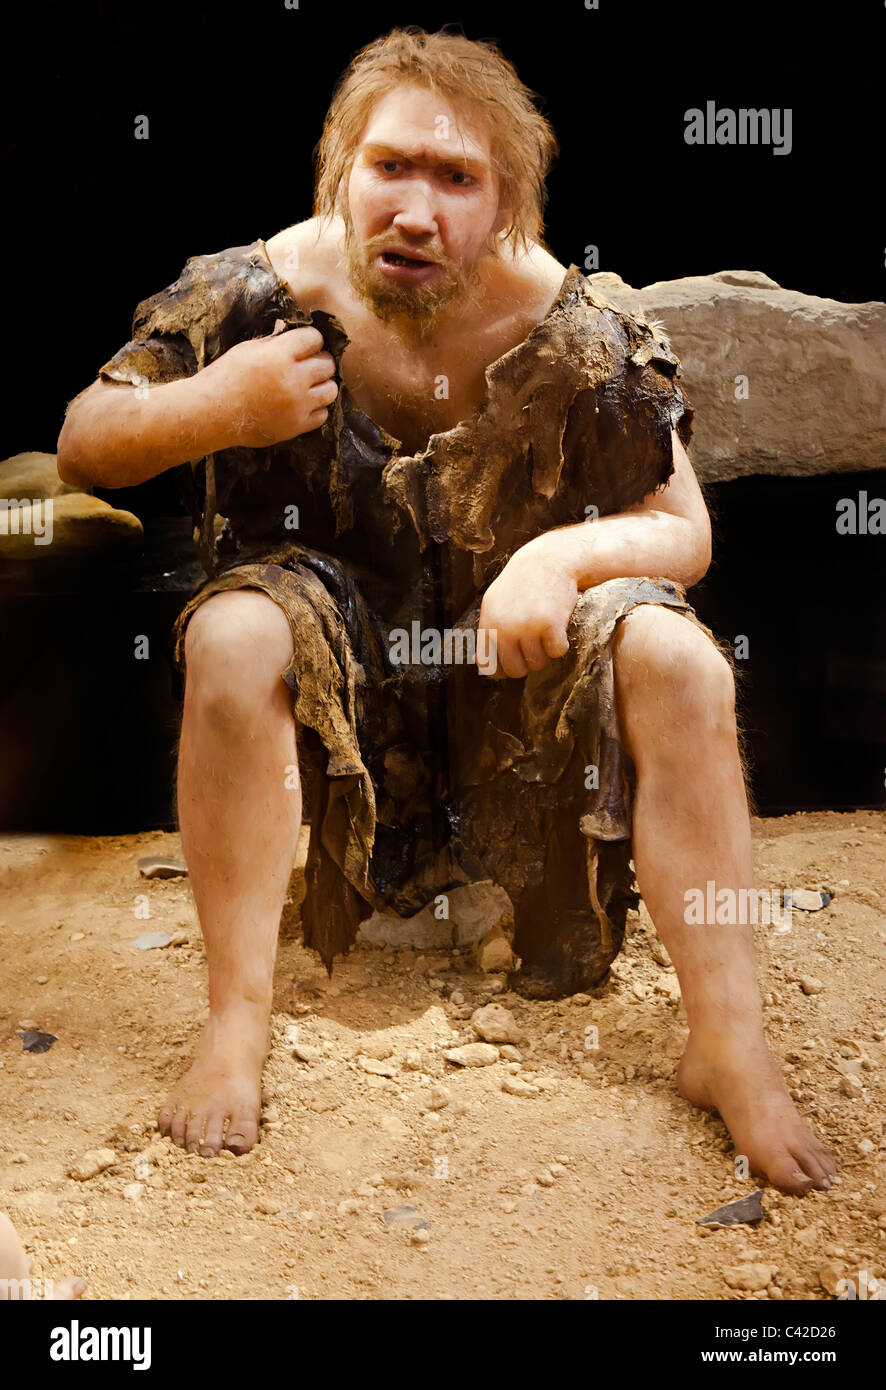 Life size model of neanderthal man museum at Les Eyzies France - Stock Image